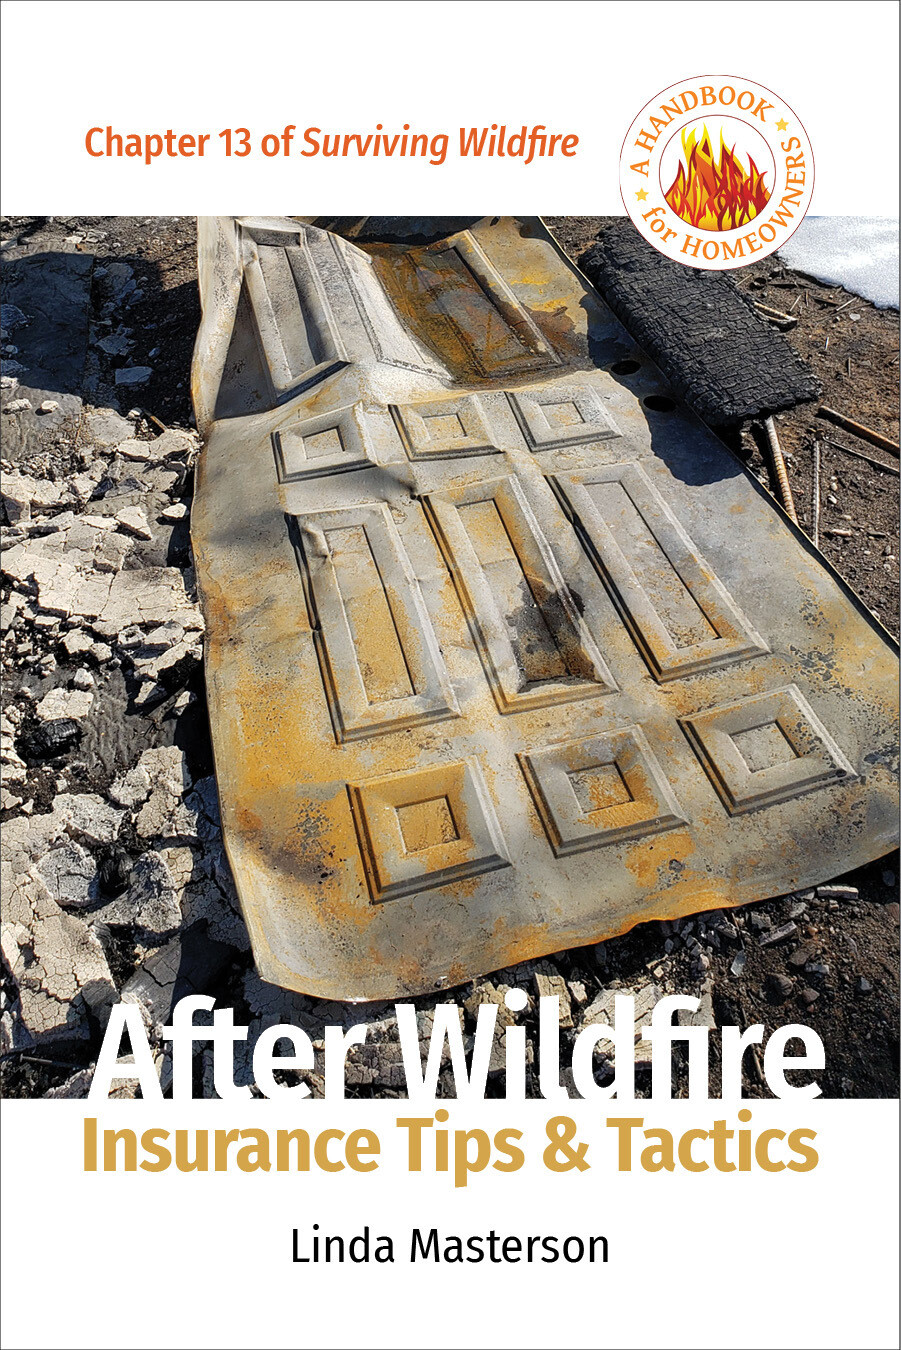 After Wildfire: Insurance Tips & Tactics